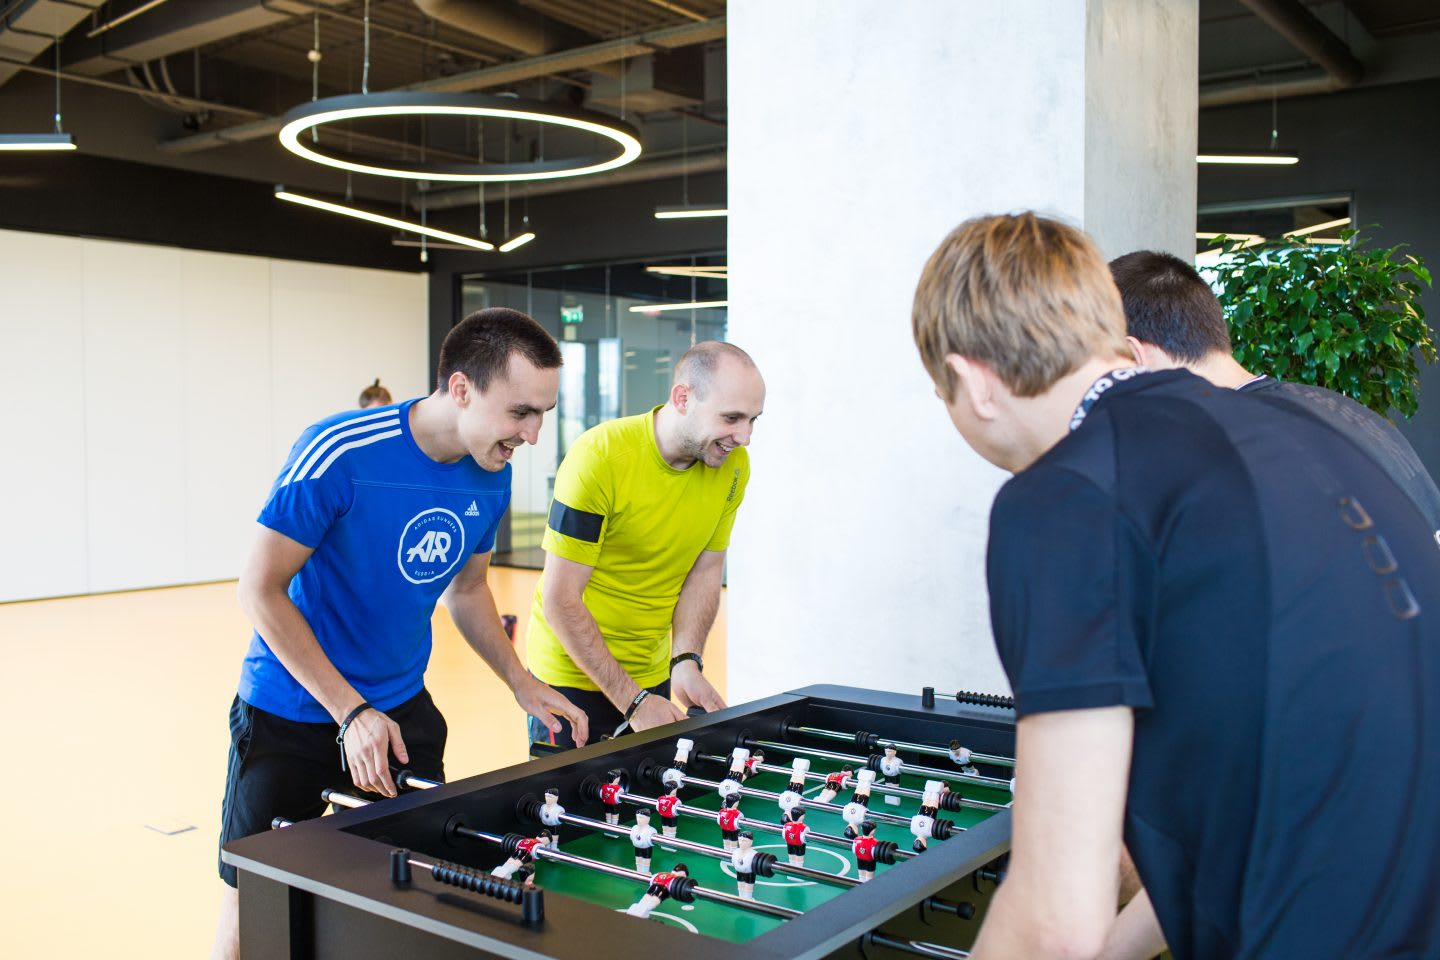 keep-your-emotional-health-in-shape-adidas-Russia-employees-bonding-playing-table-soccer